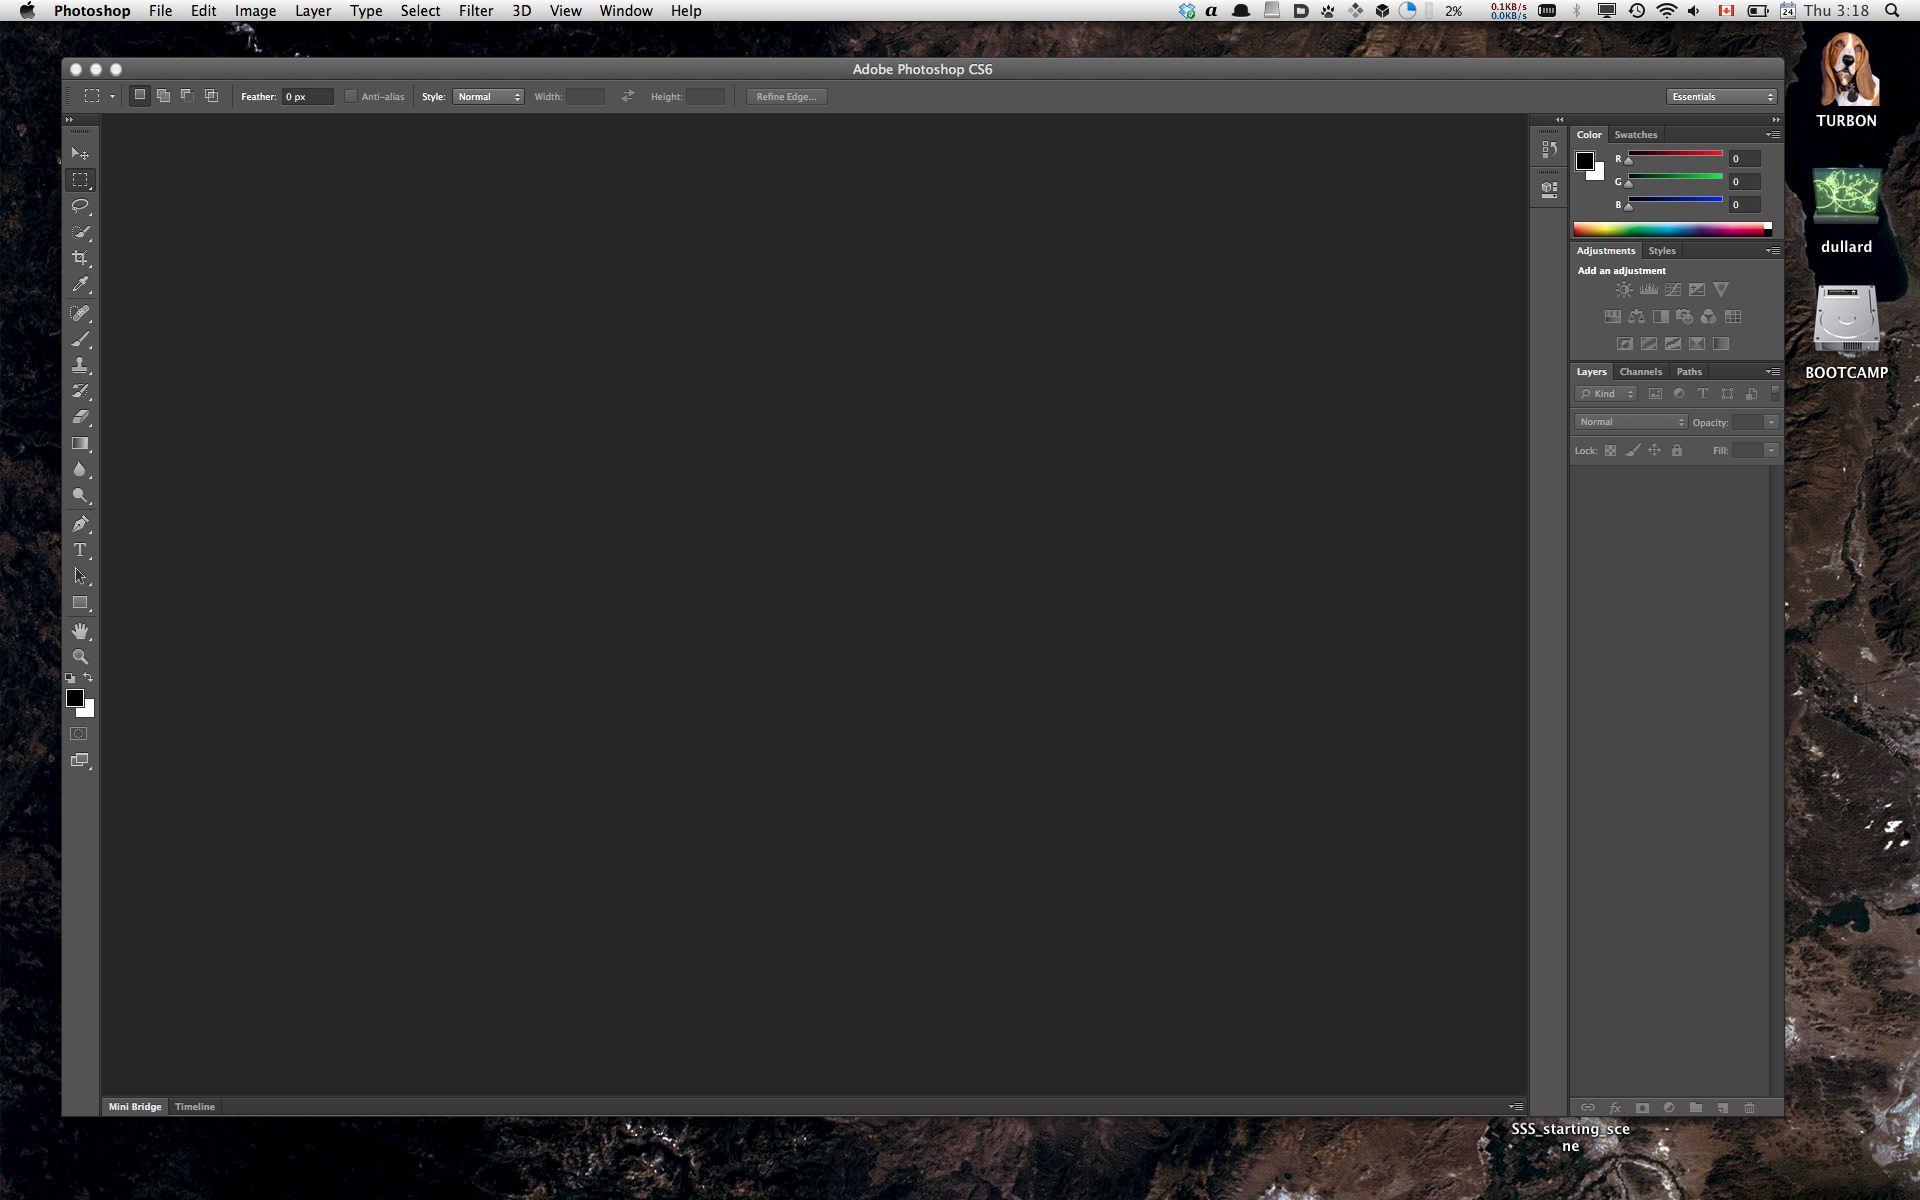 """Review: Adobe Photoshop CS6 and the """"Creative Cloud"""" 